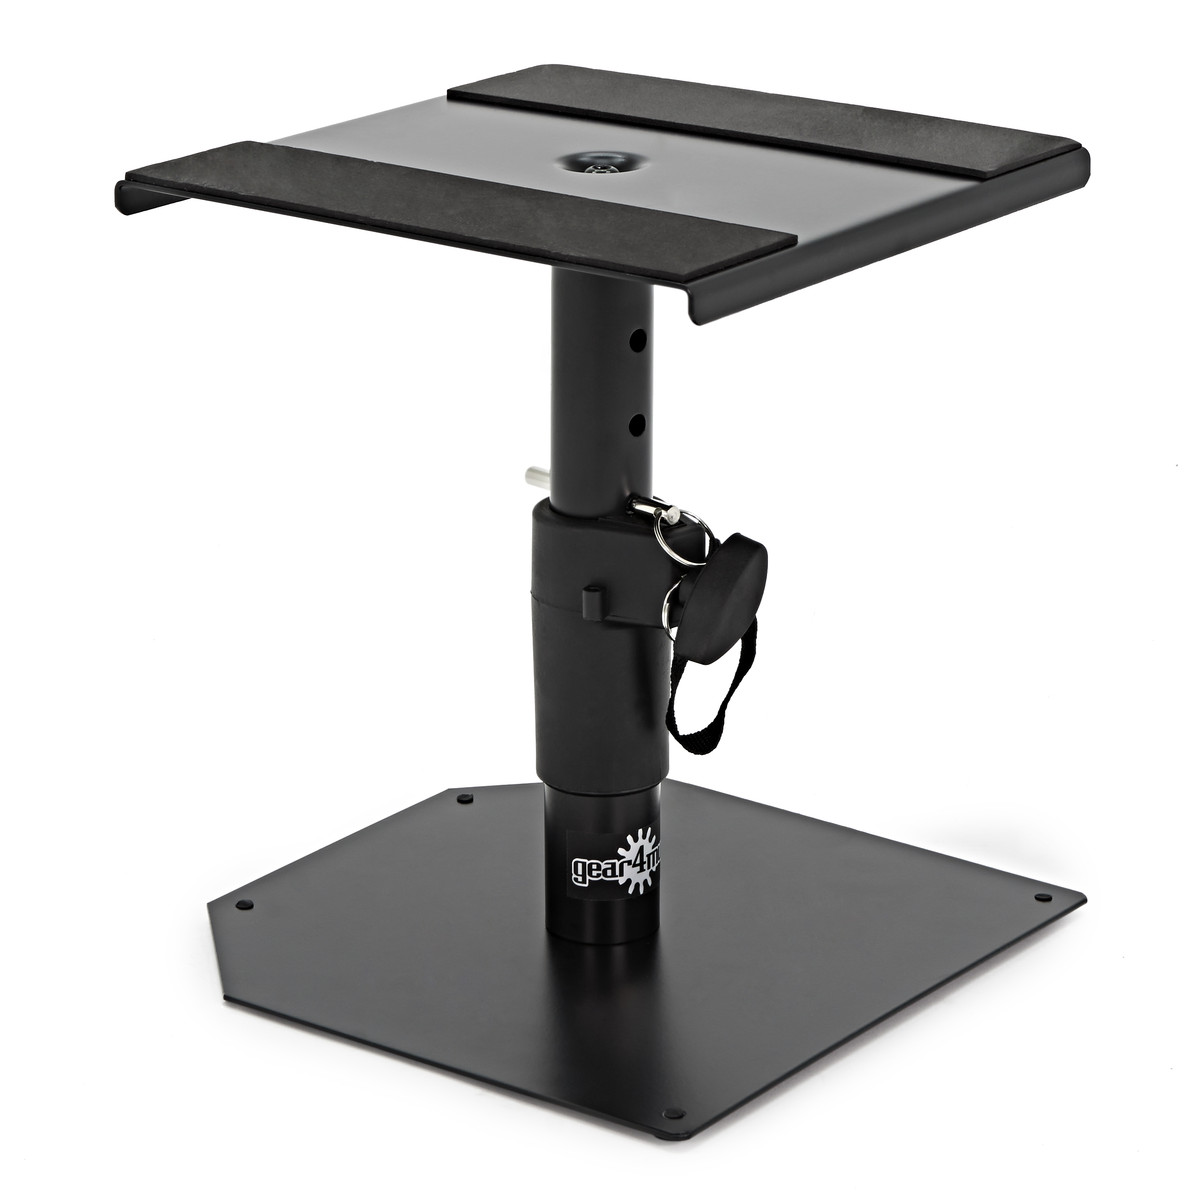 Desktop Monitor Speaker Stands By Gear4music Pair B